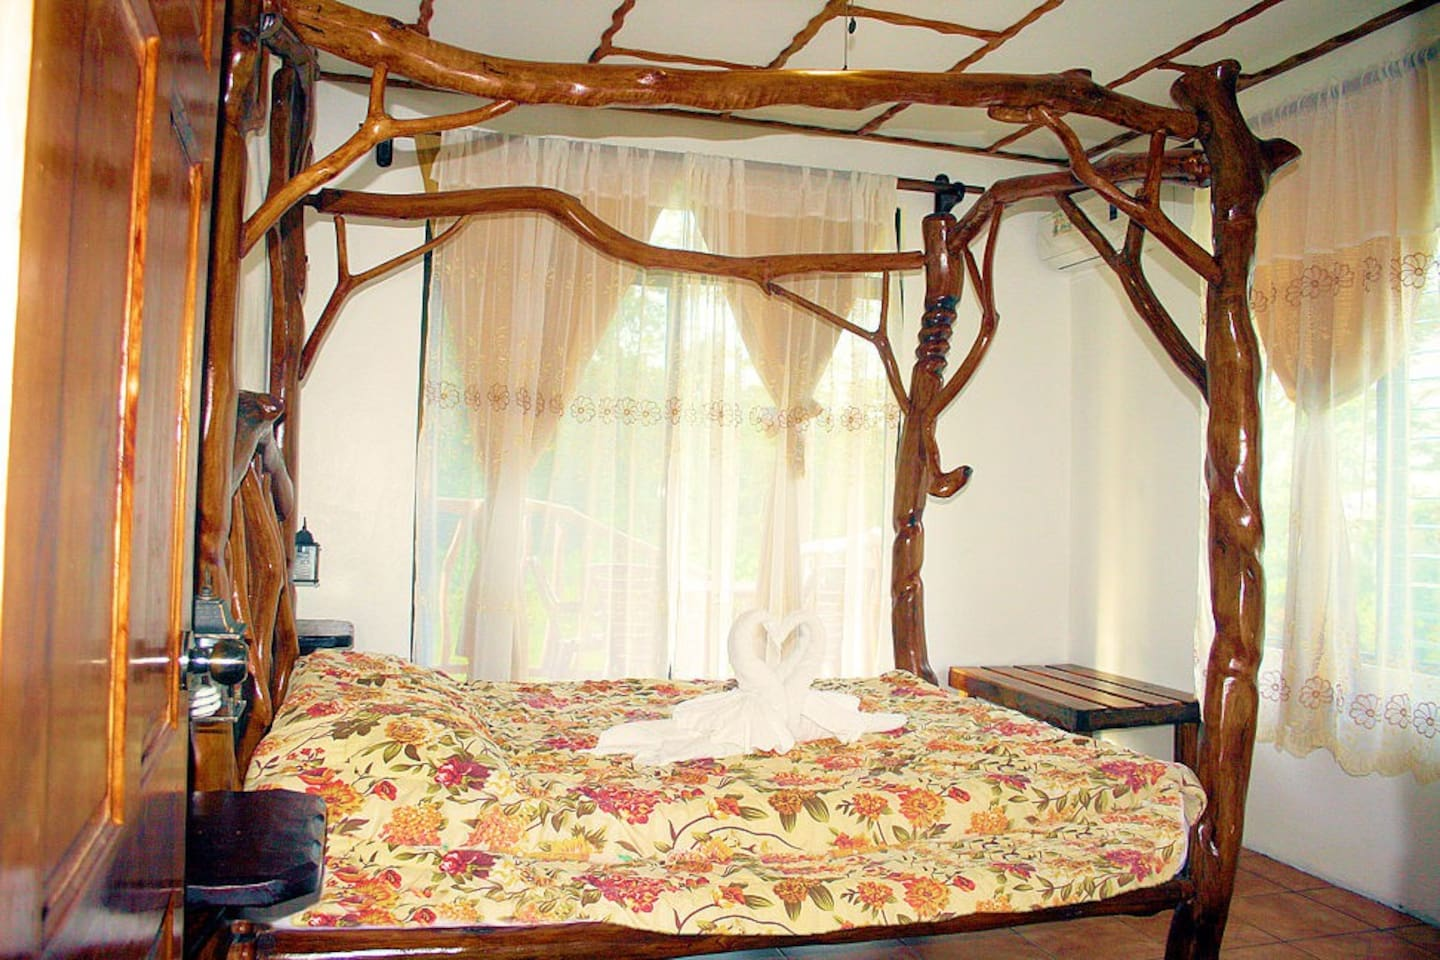 Rustic Handmade Queen bed in the Colibri Casita (Hummingbird) master bedroom